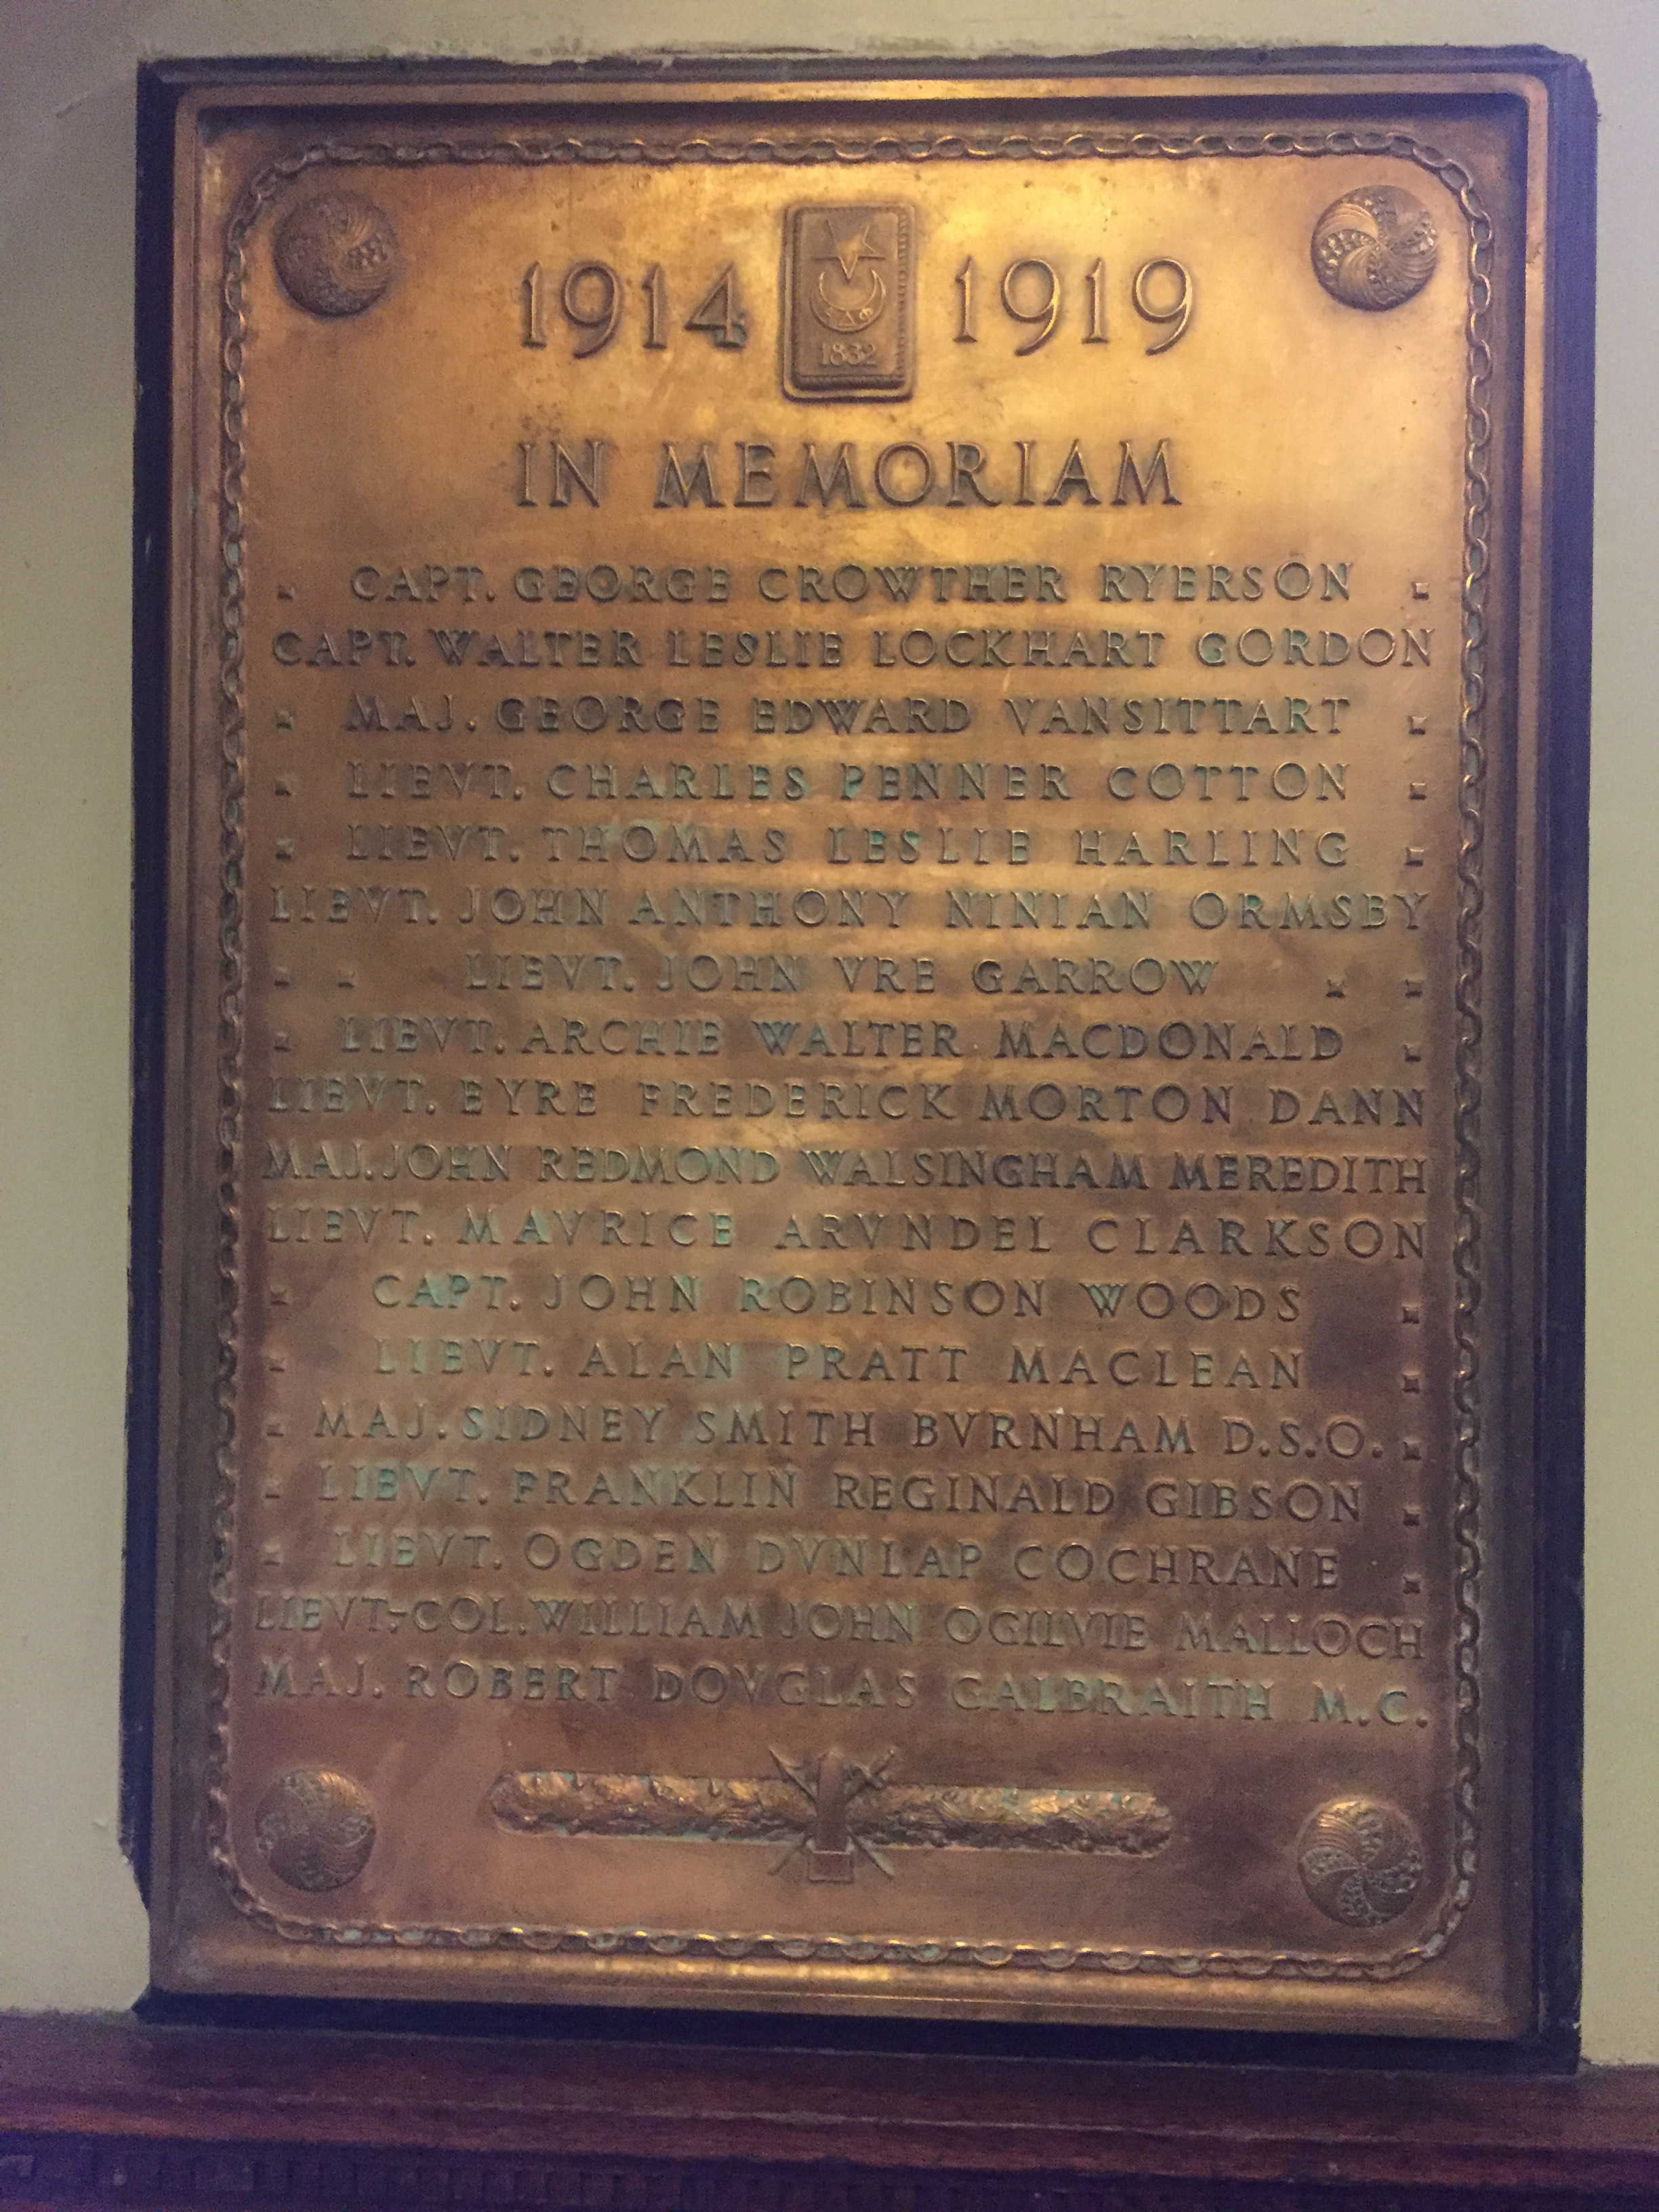 Memorial Plaque– Memorial Plaque –  Lt. Charles Penner Cotton is remembered on this bronze memorial plaque. The plaque is found in the foyer of the Alpha Delta Phi Chapter House at 94 Prince Arthur Avenue, Toronto, ON.